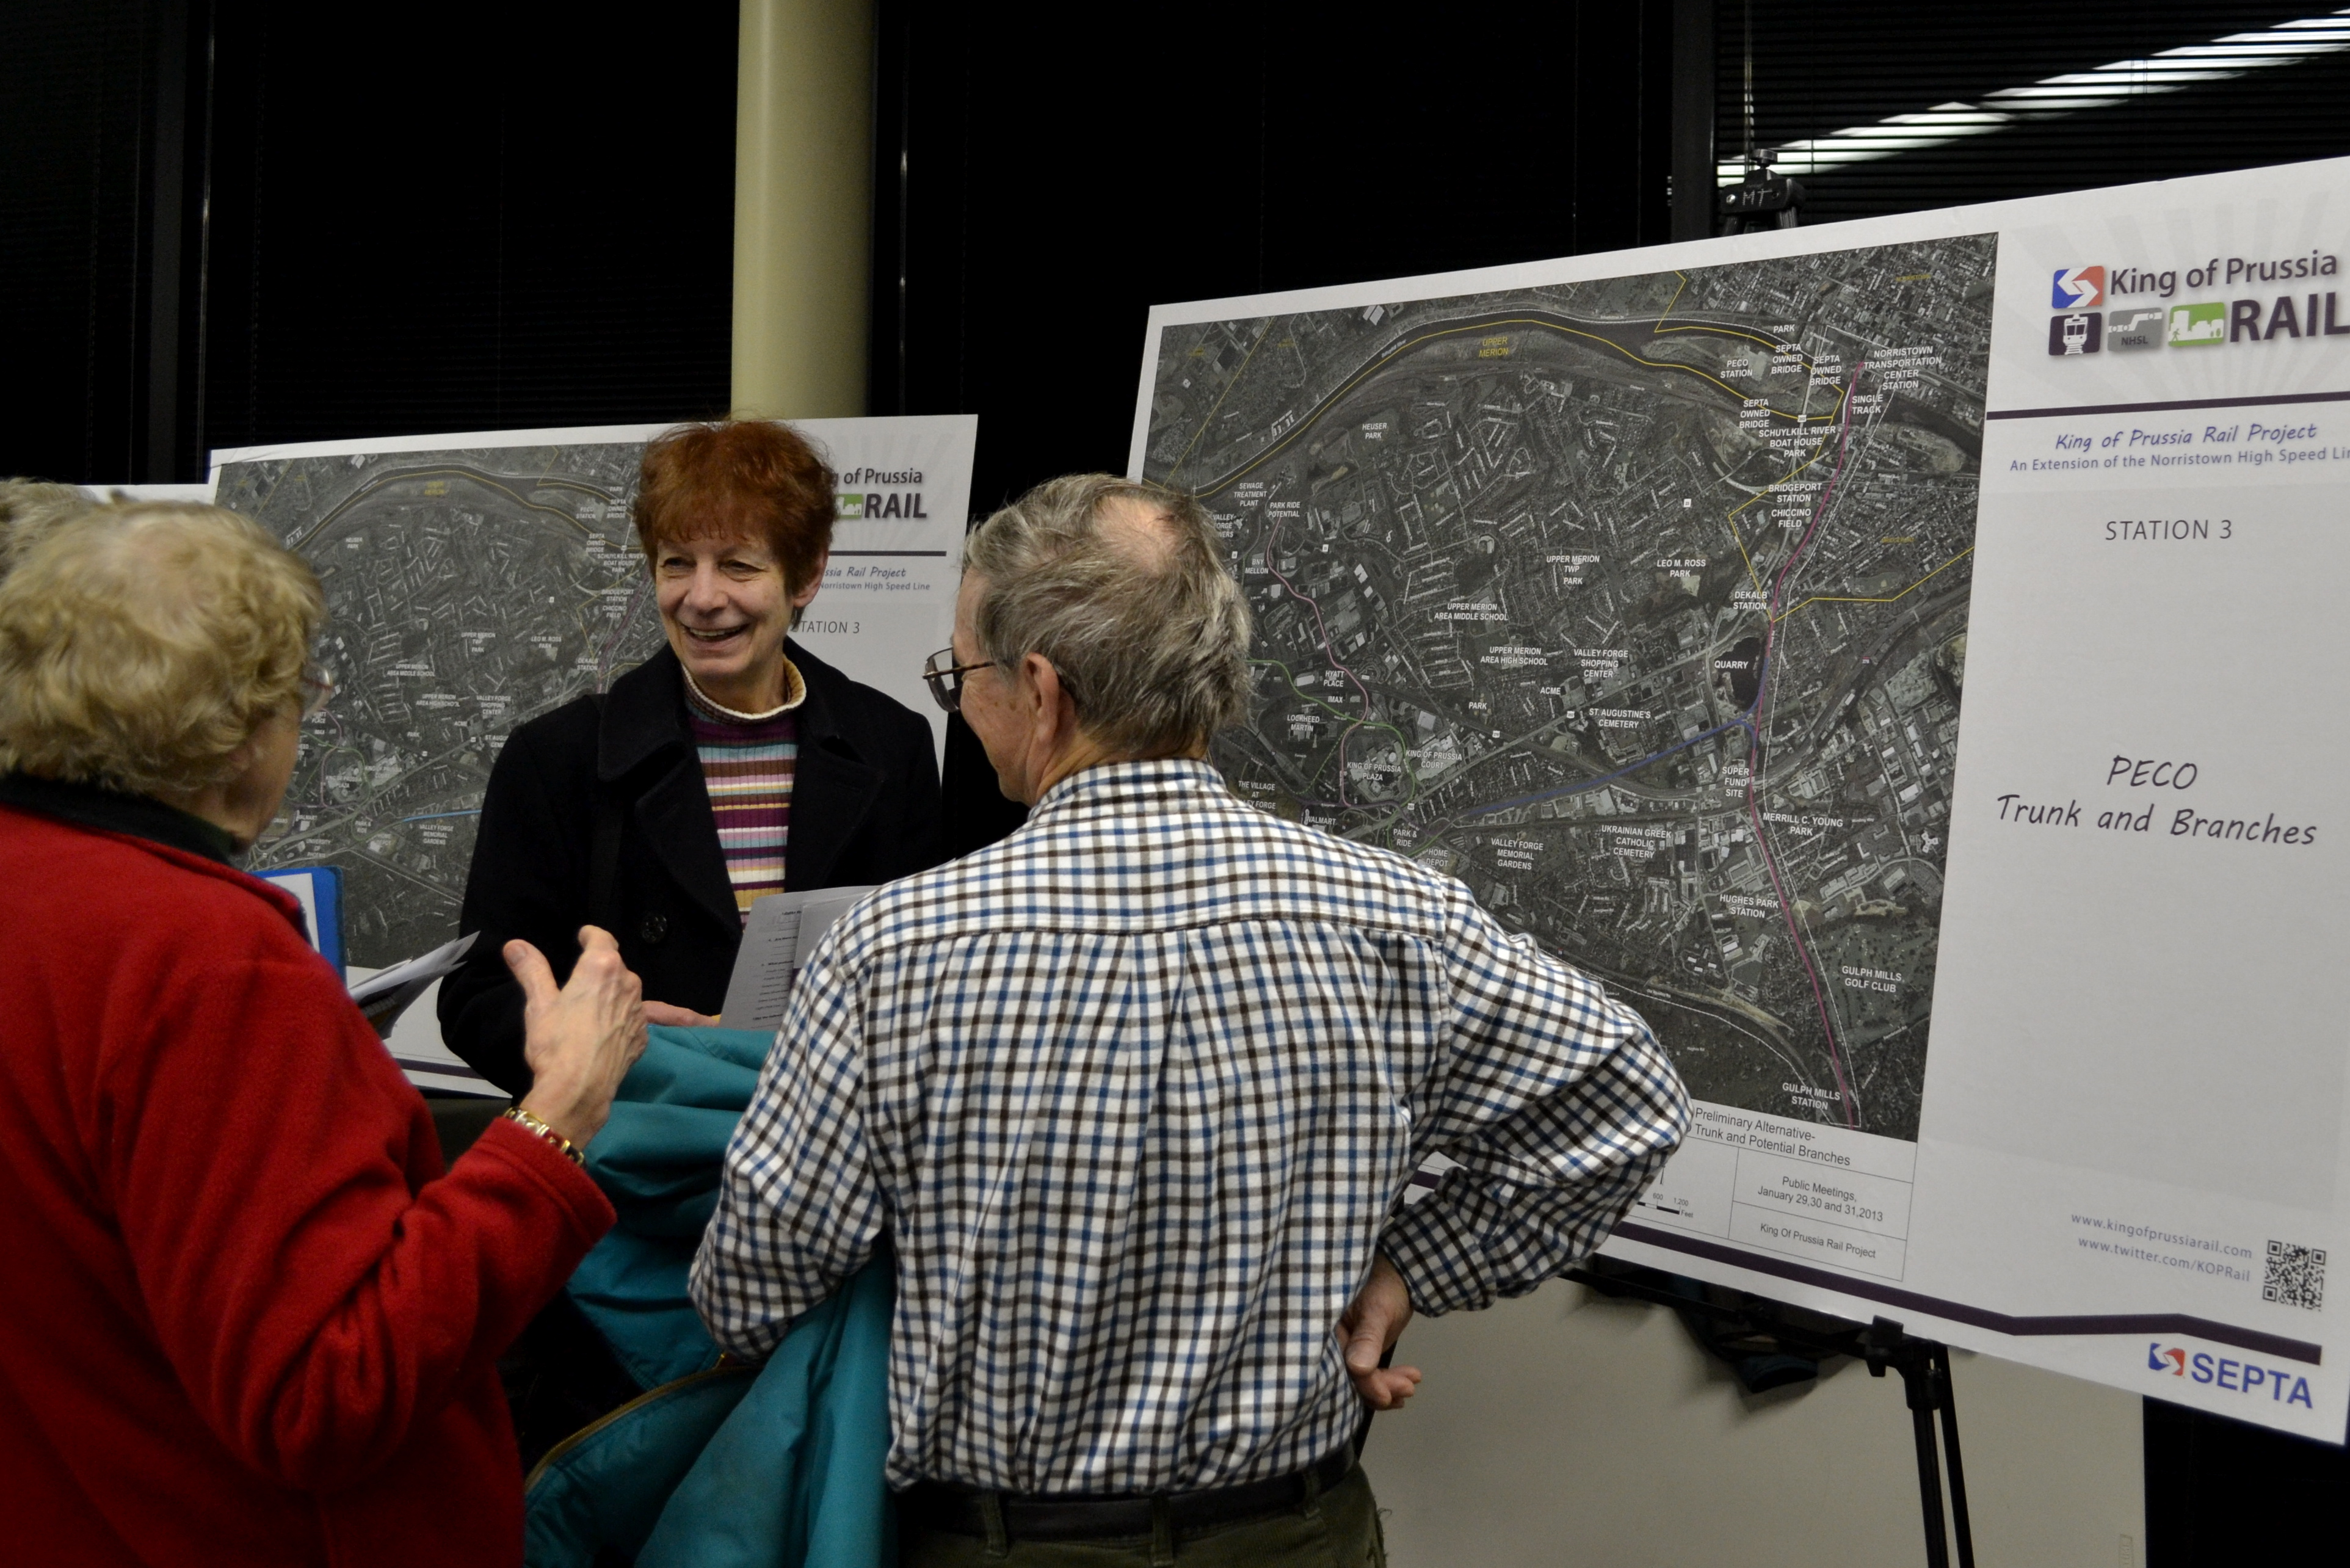 King of Prussia Rail Project public meeting